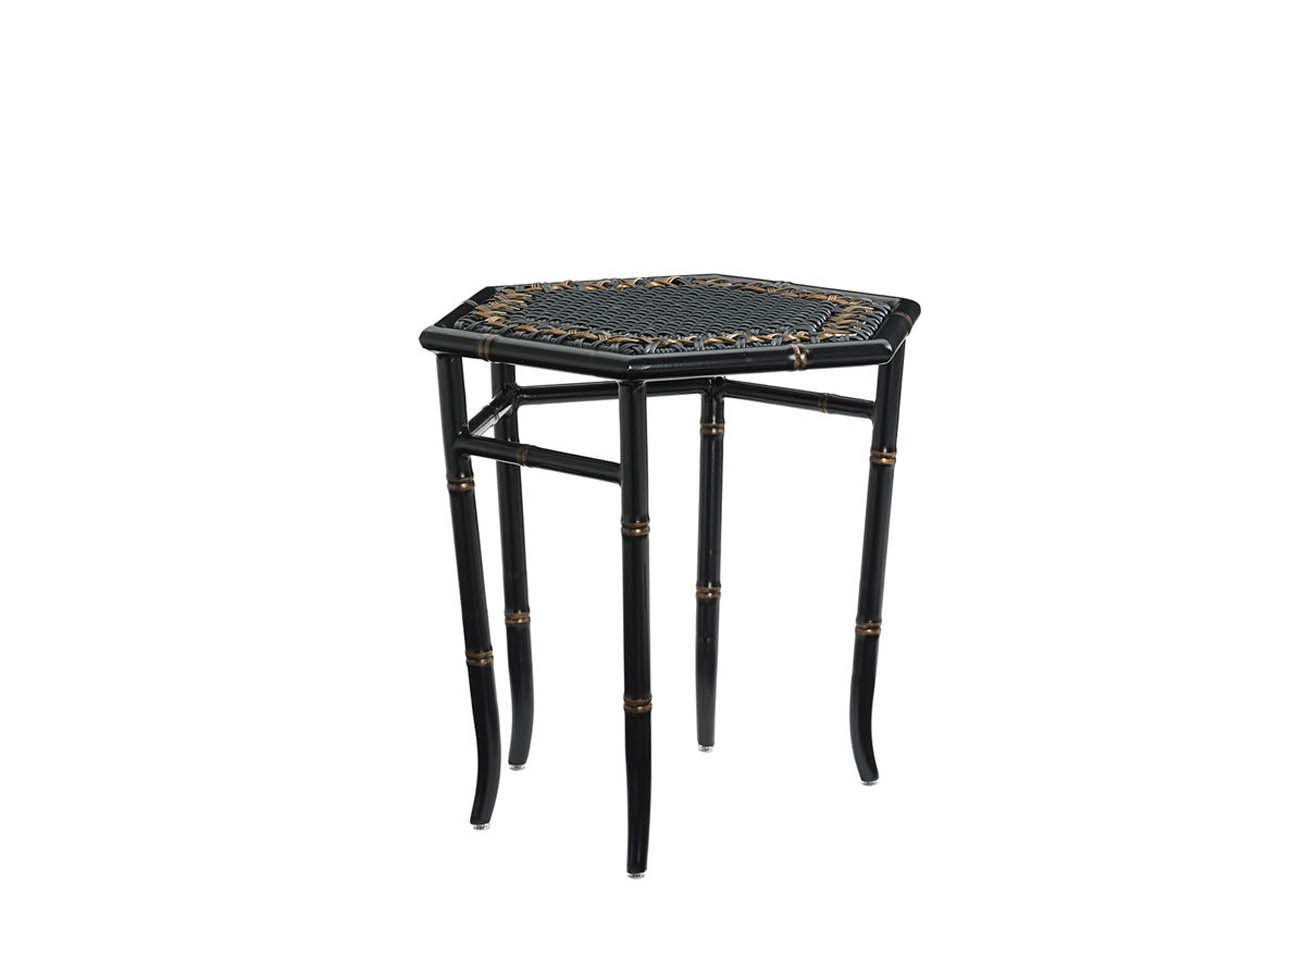 Nesting Tables For Patio | mpfmpf.com Almirah, Beds, Wardrobes and Furniture